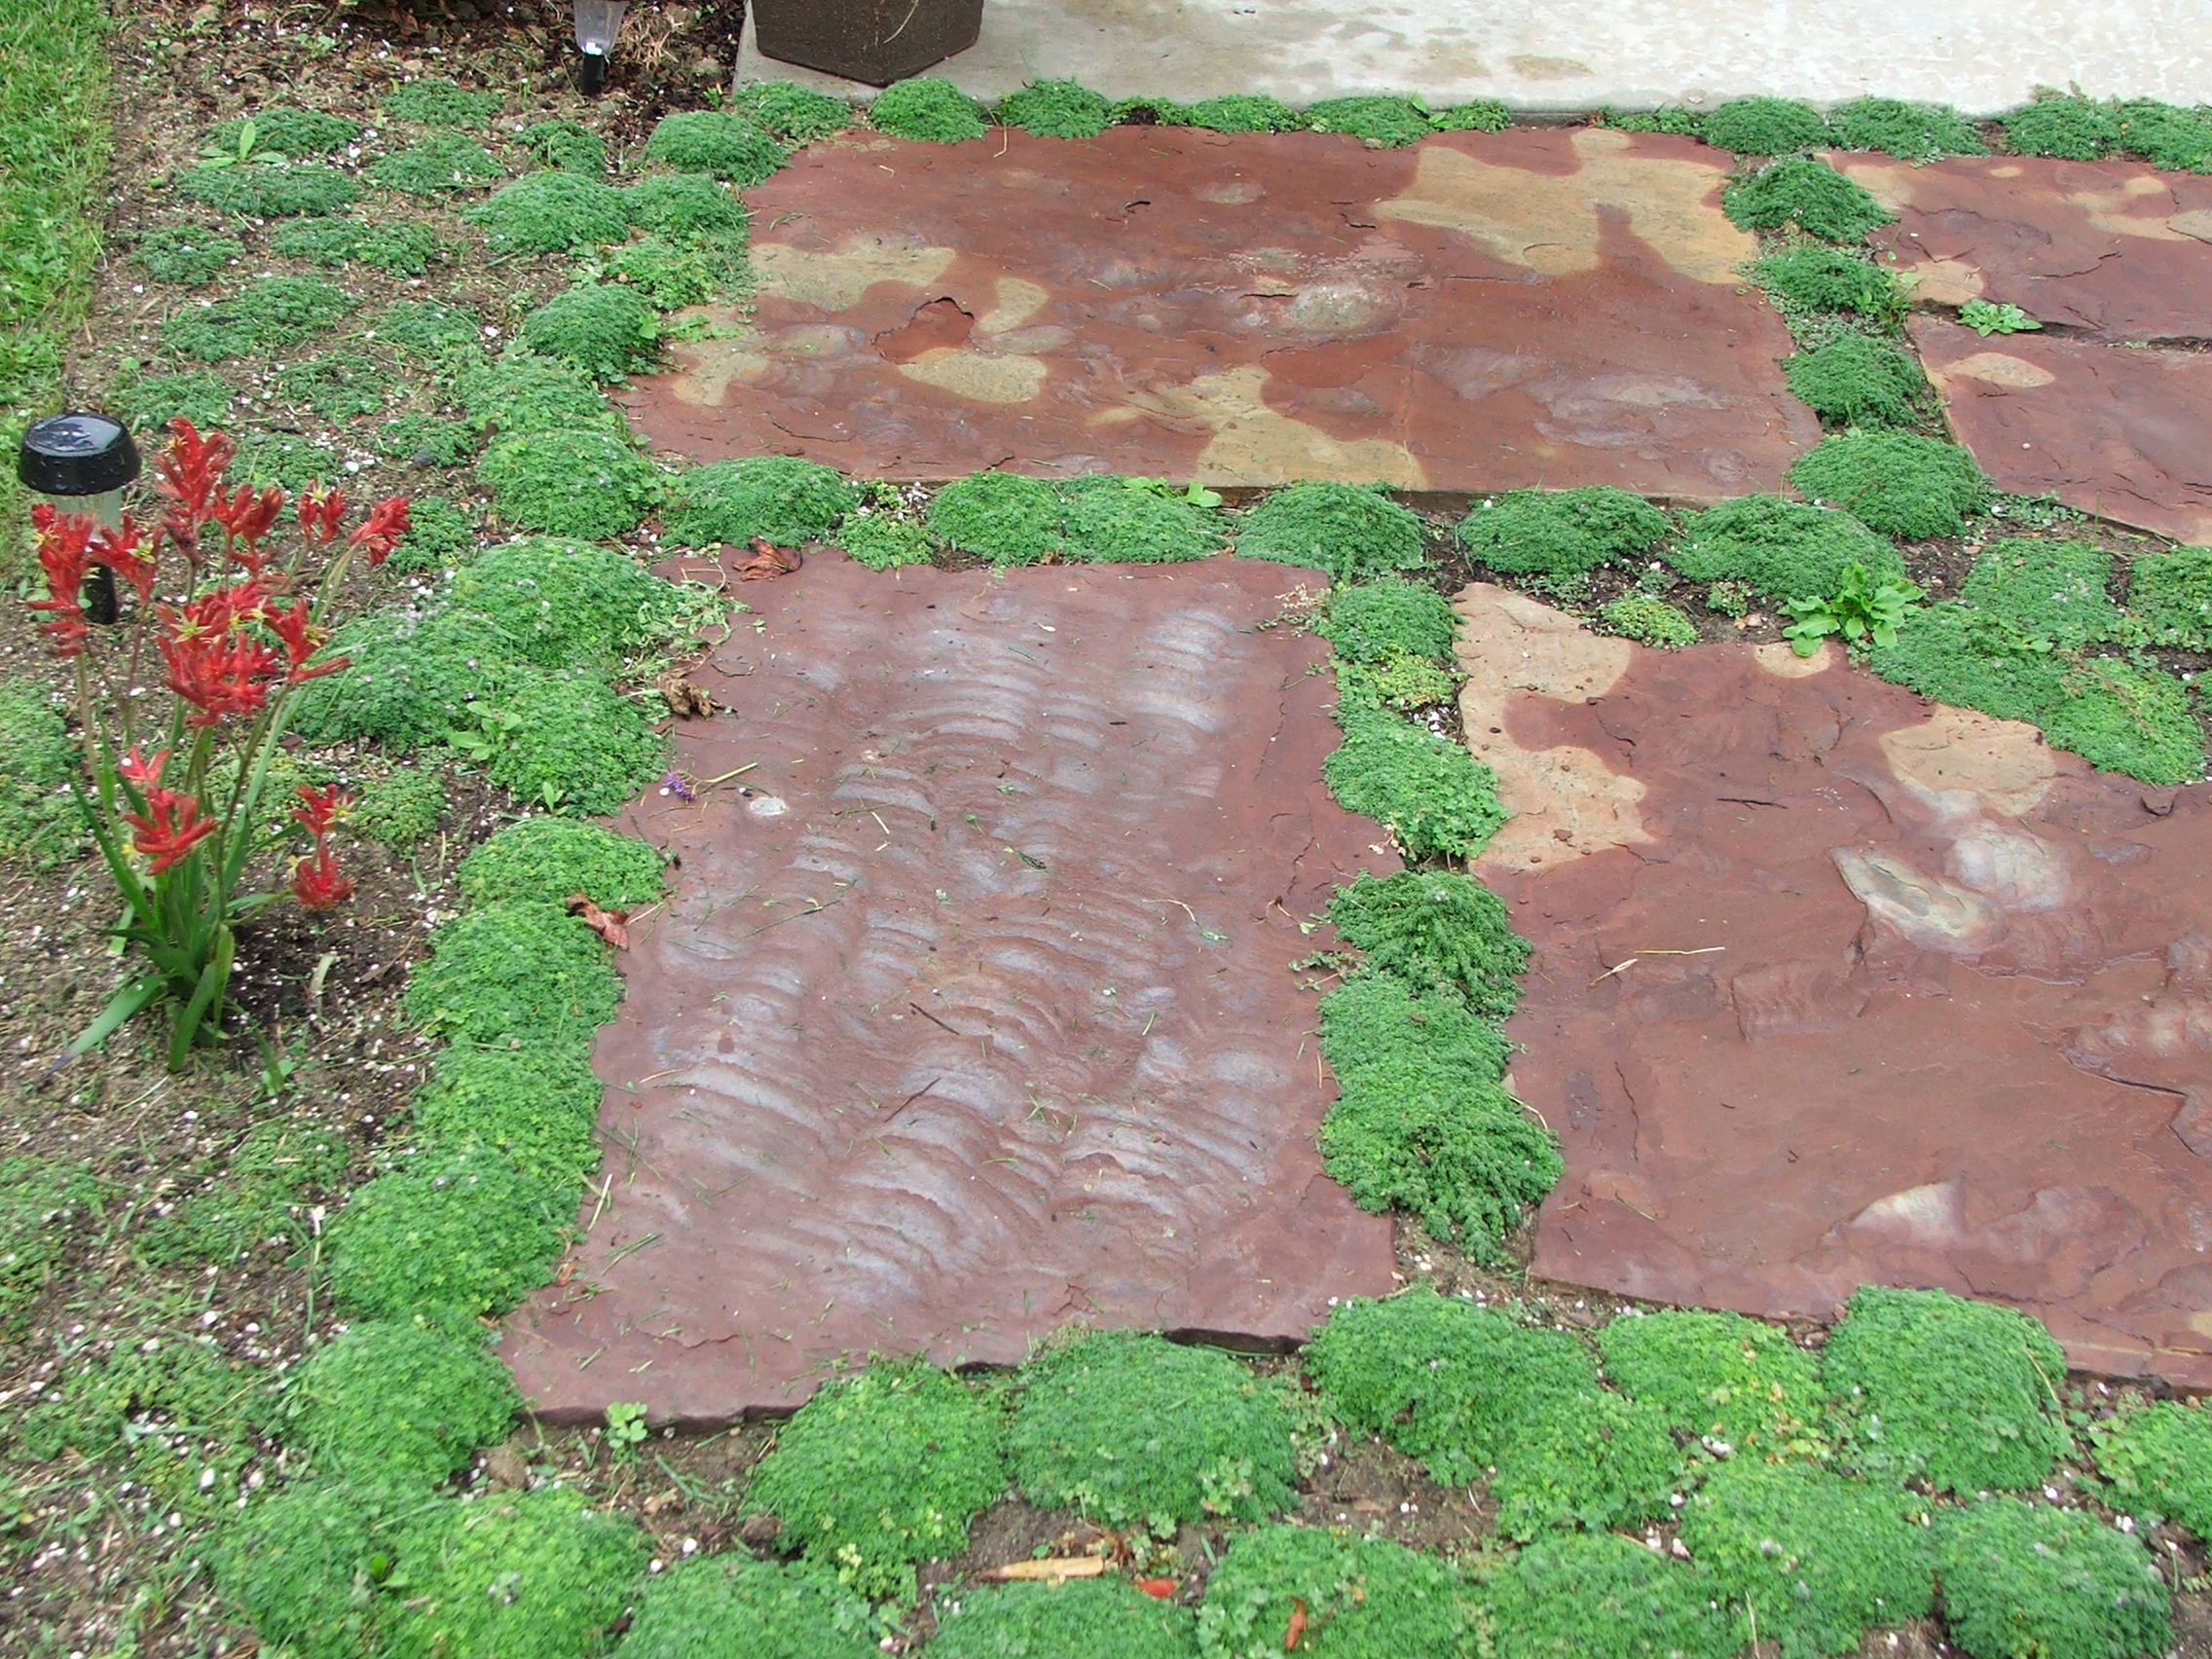 How to plant ground cover between pavers - Landscaping With Pavers Elfin Thyme Used In Landscaping Between Flagstone Pavers